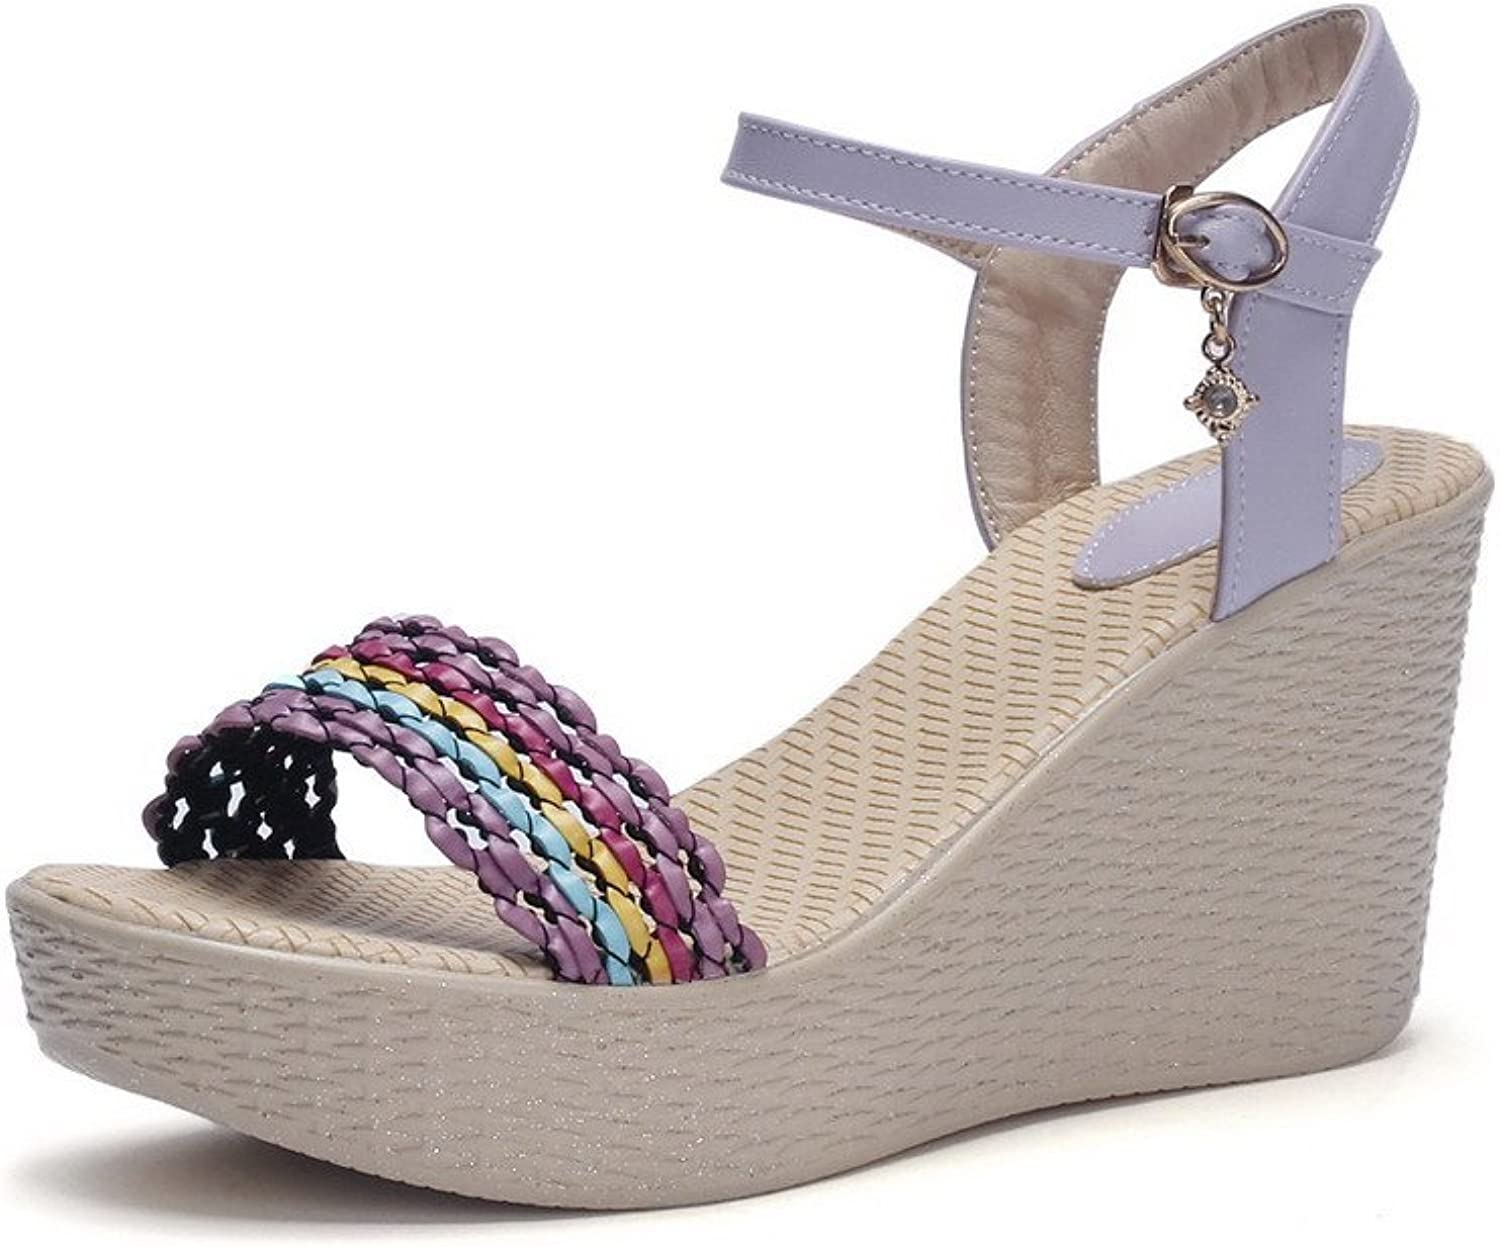 AmoonyFashion Women's Buckle High-Heels Pu Assorted color Open Toe Sandals